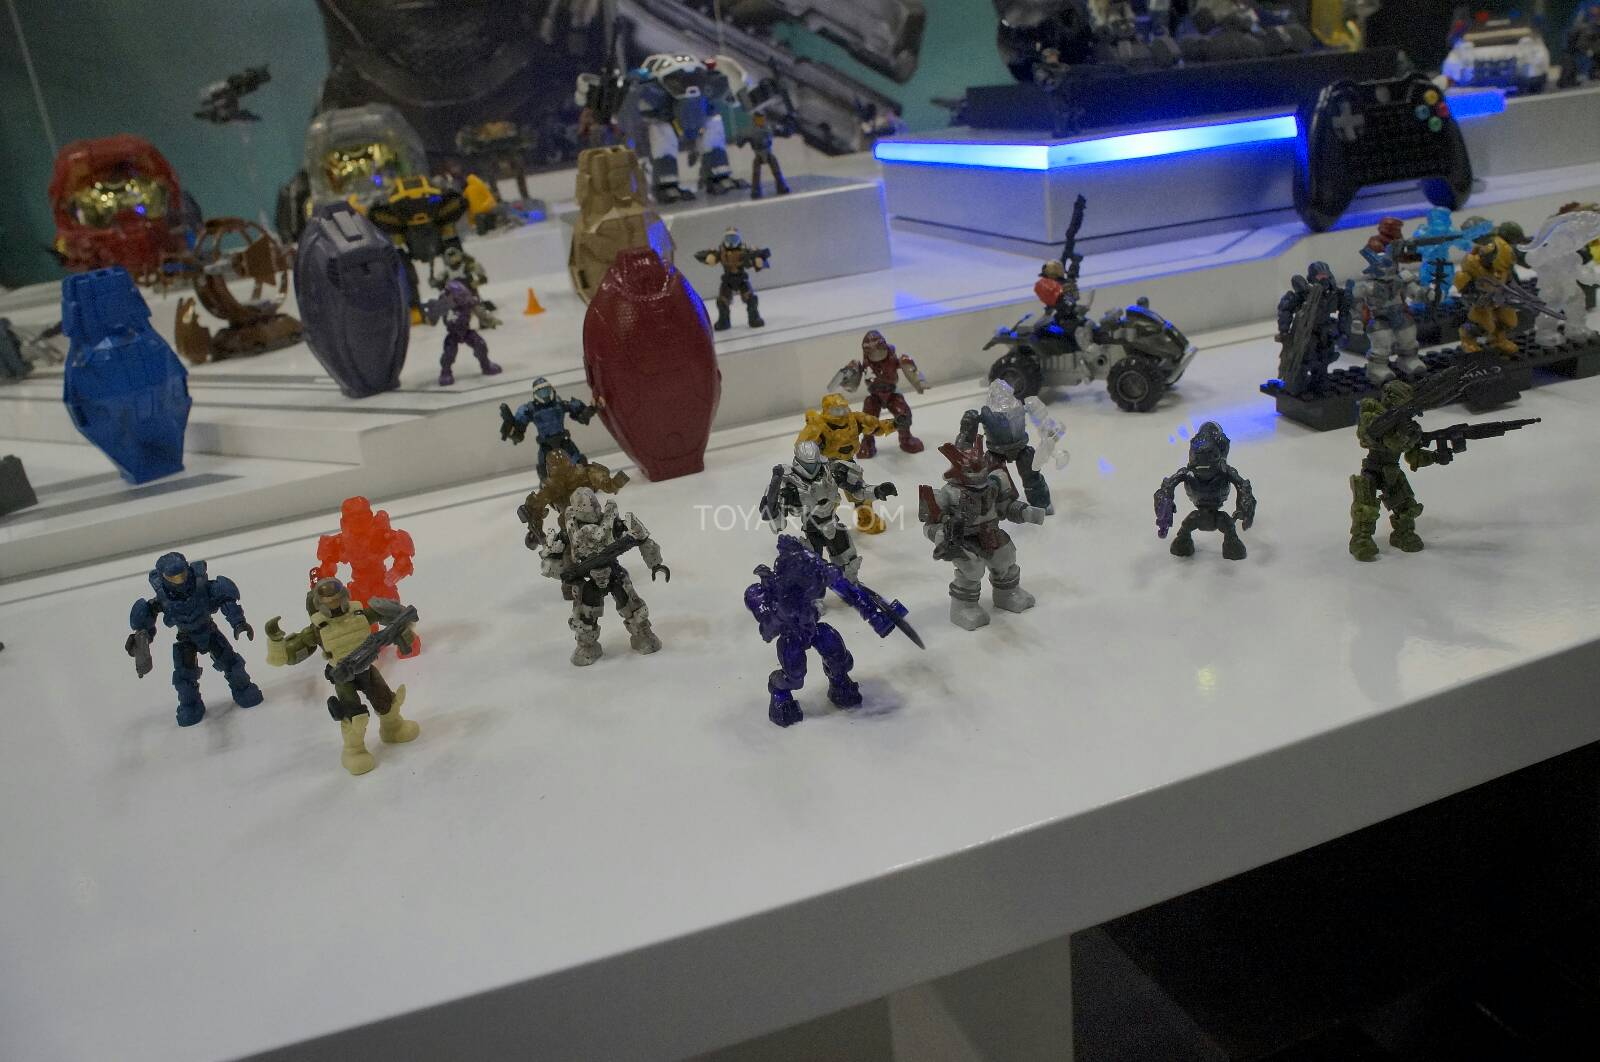 Toy Fair 2014 - Halo Mega Bloks - The Toyark - News